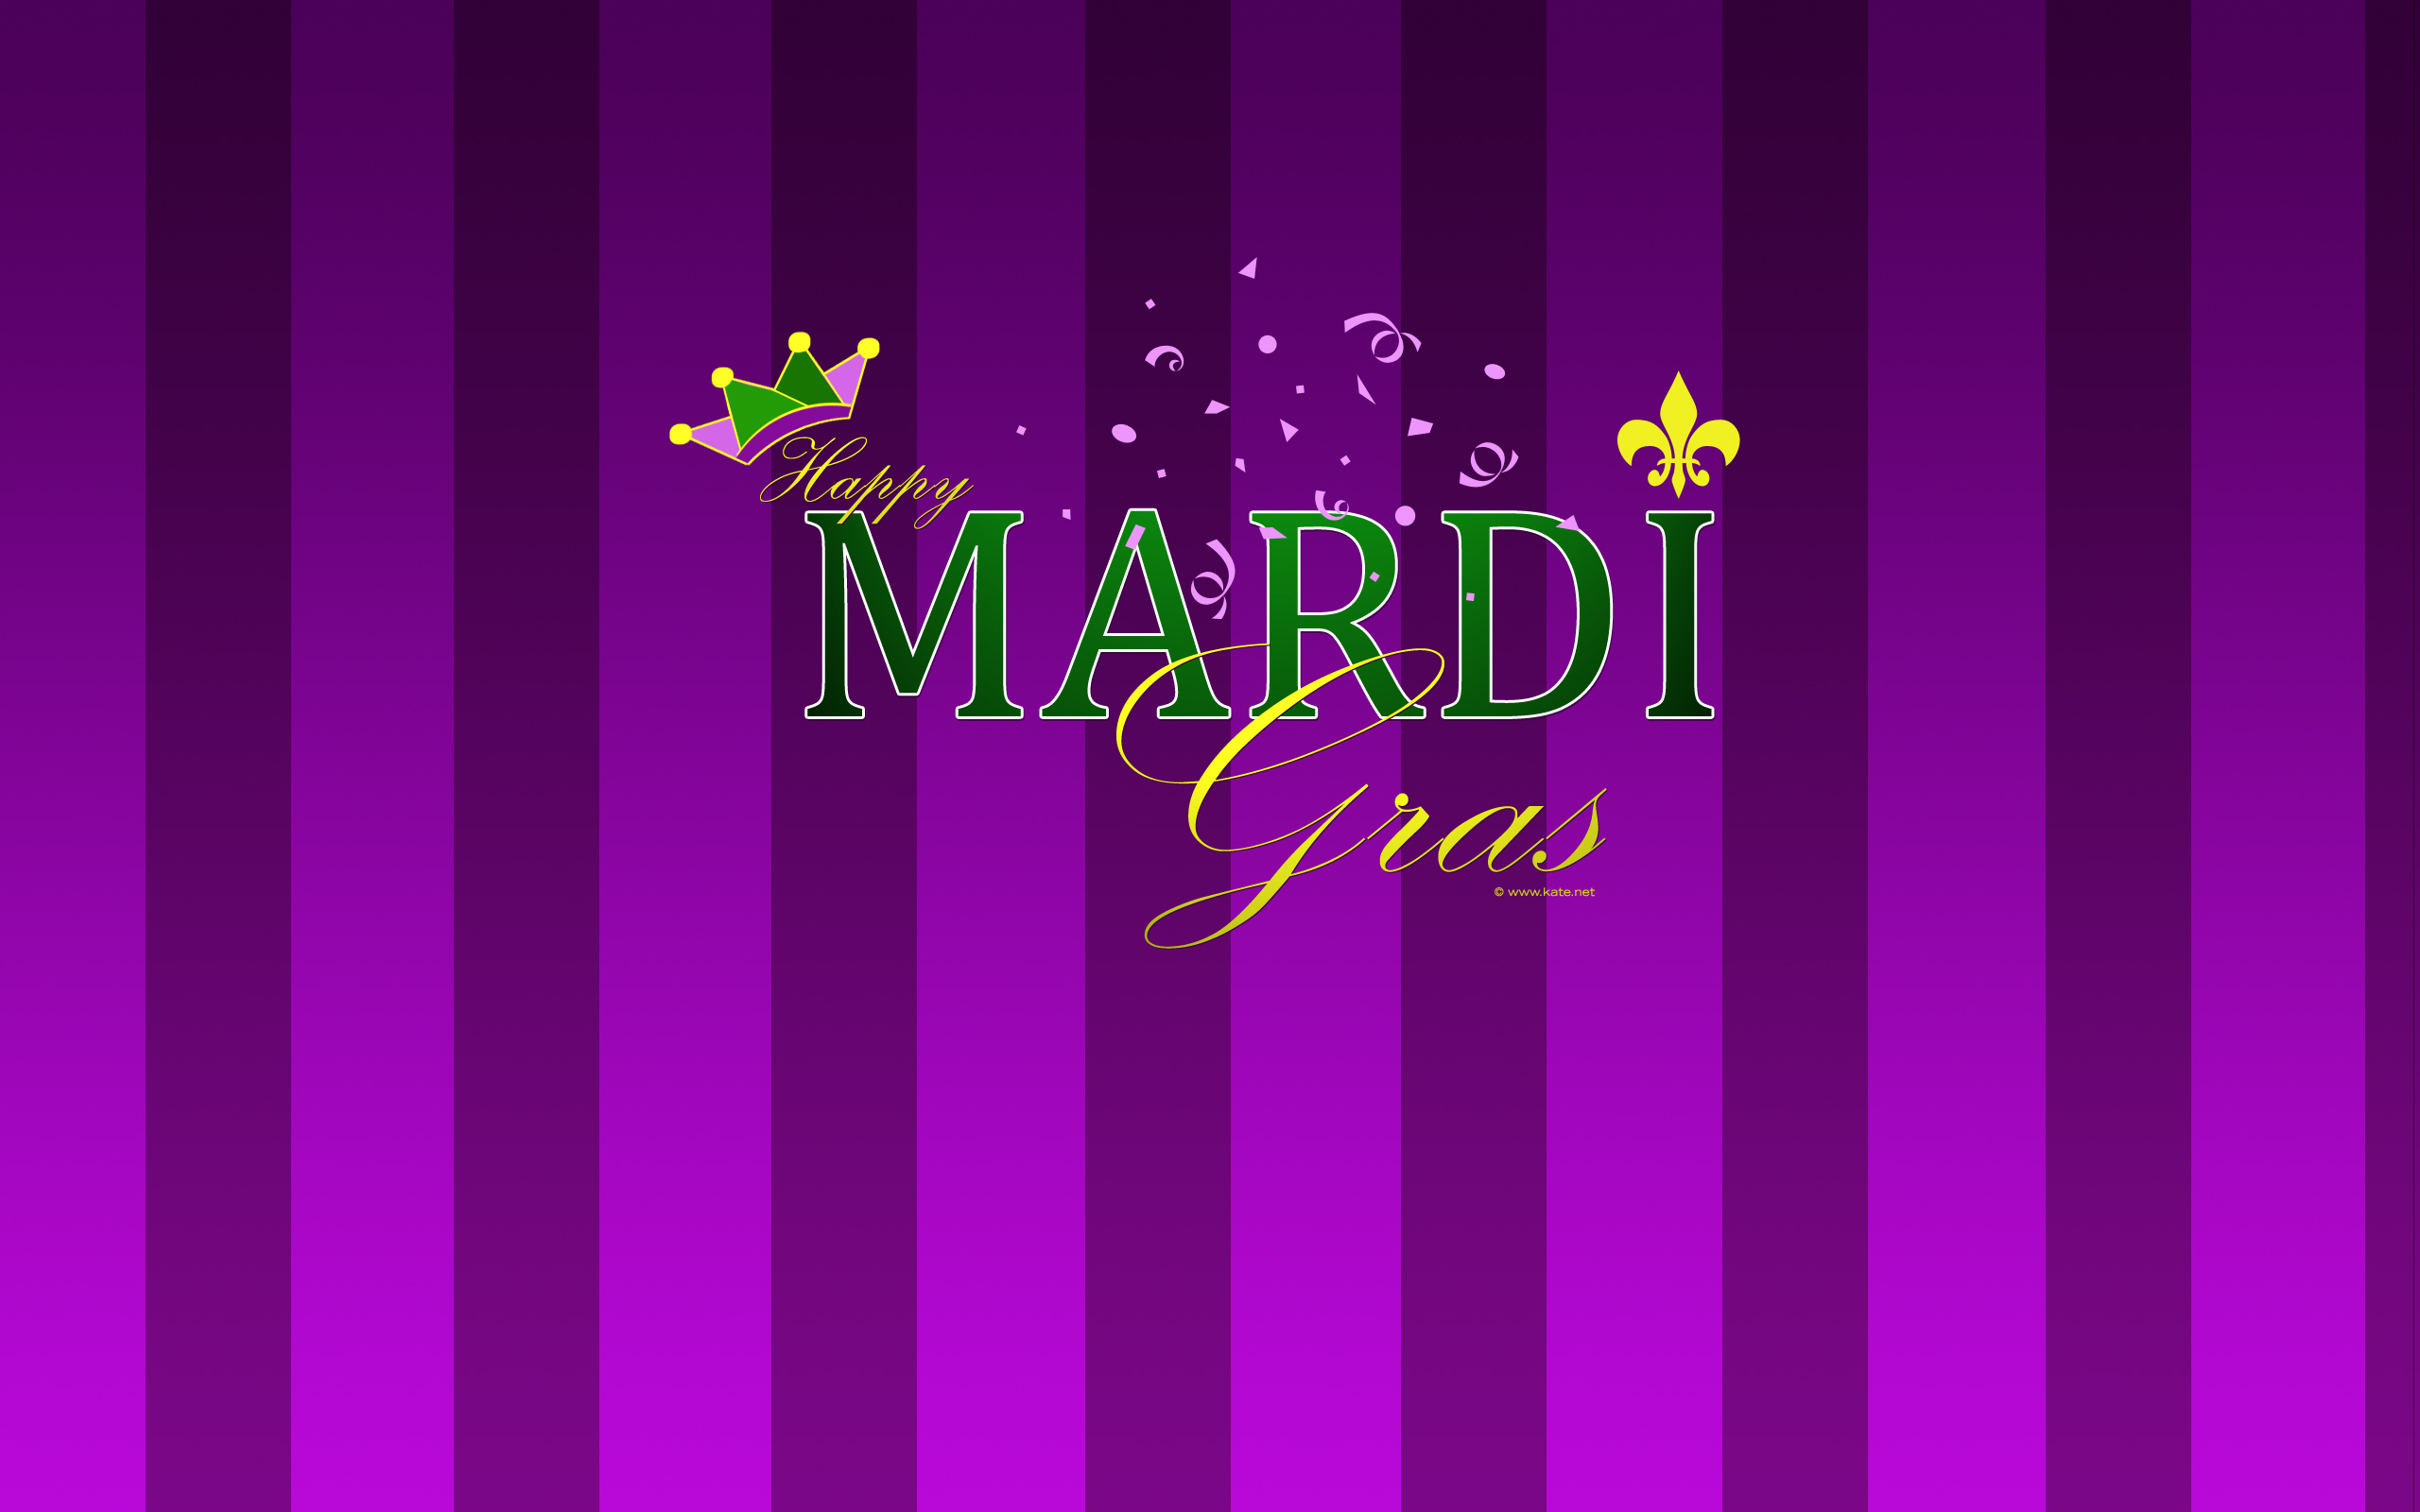 mardi gras wallpapers, mardi gras backgroundskate